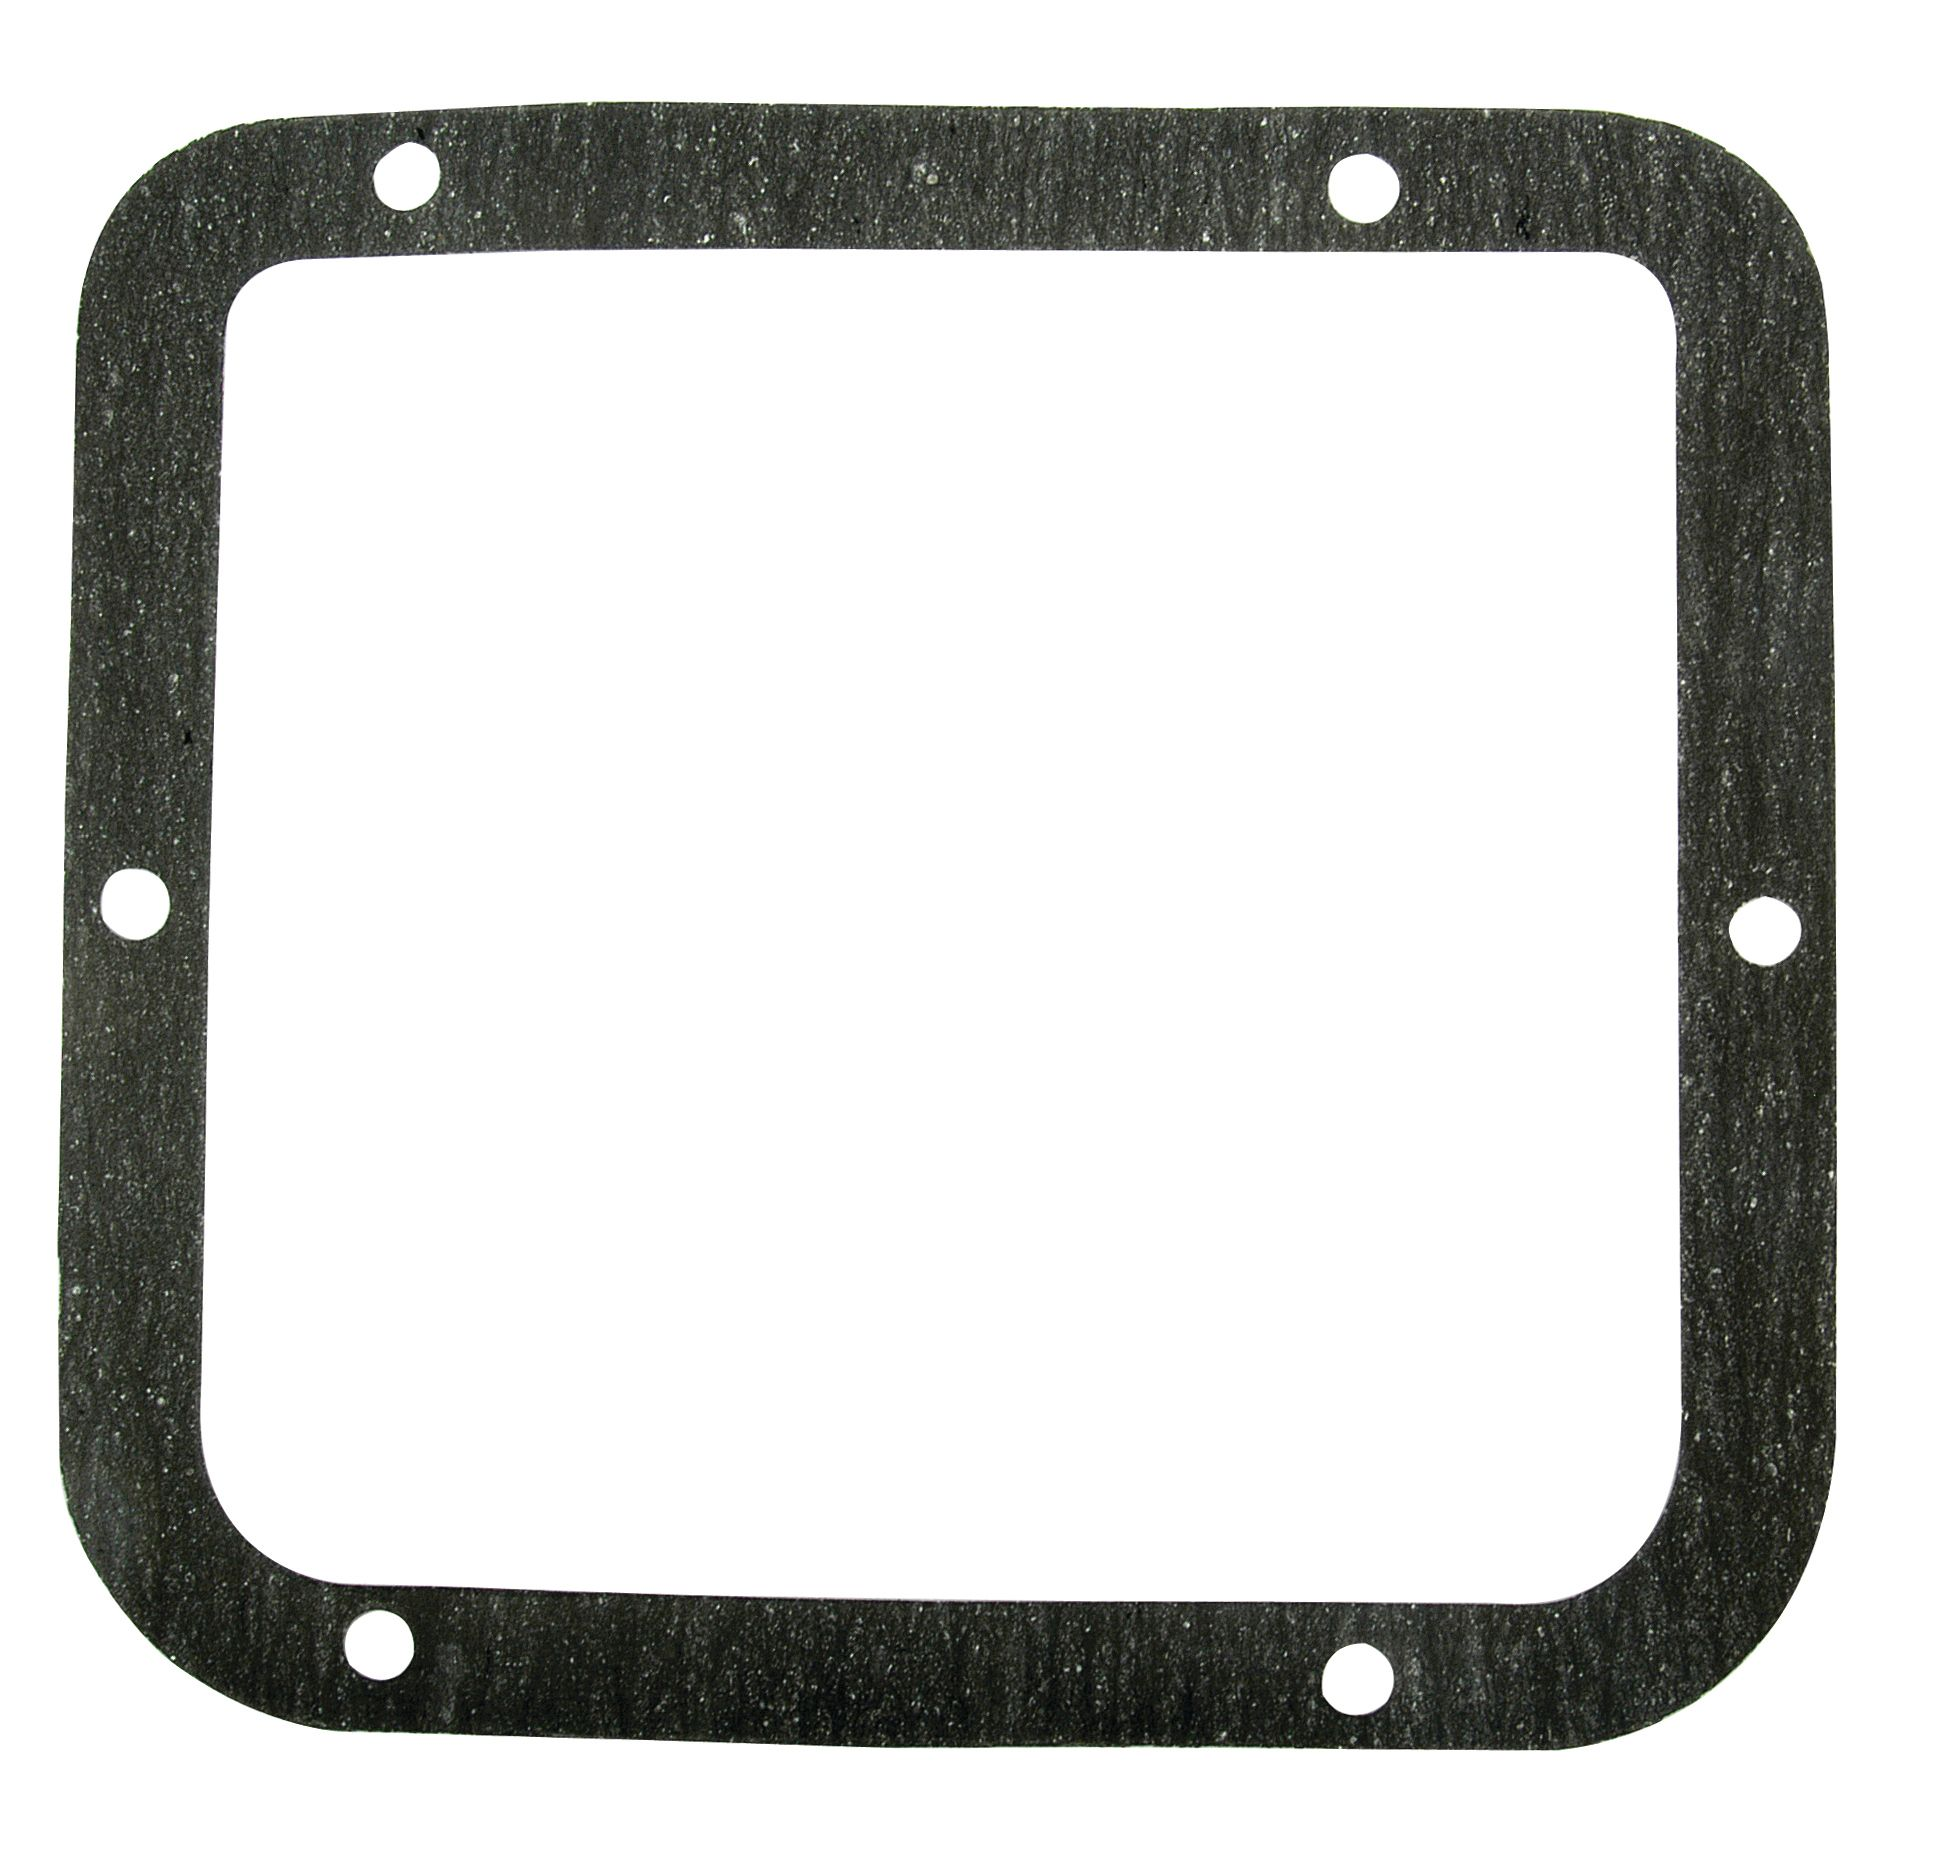 LONG TRACTOR GASKET-GEARSHIFT COVER 62546